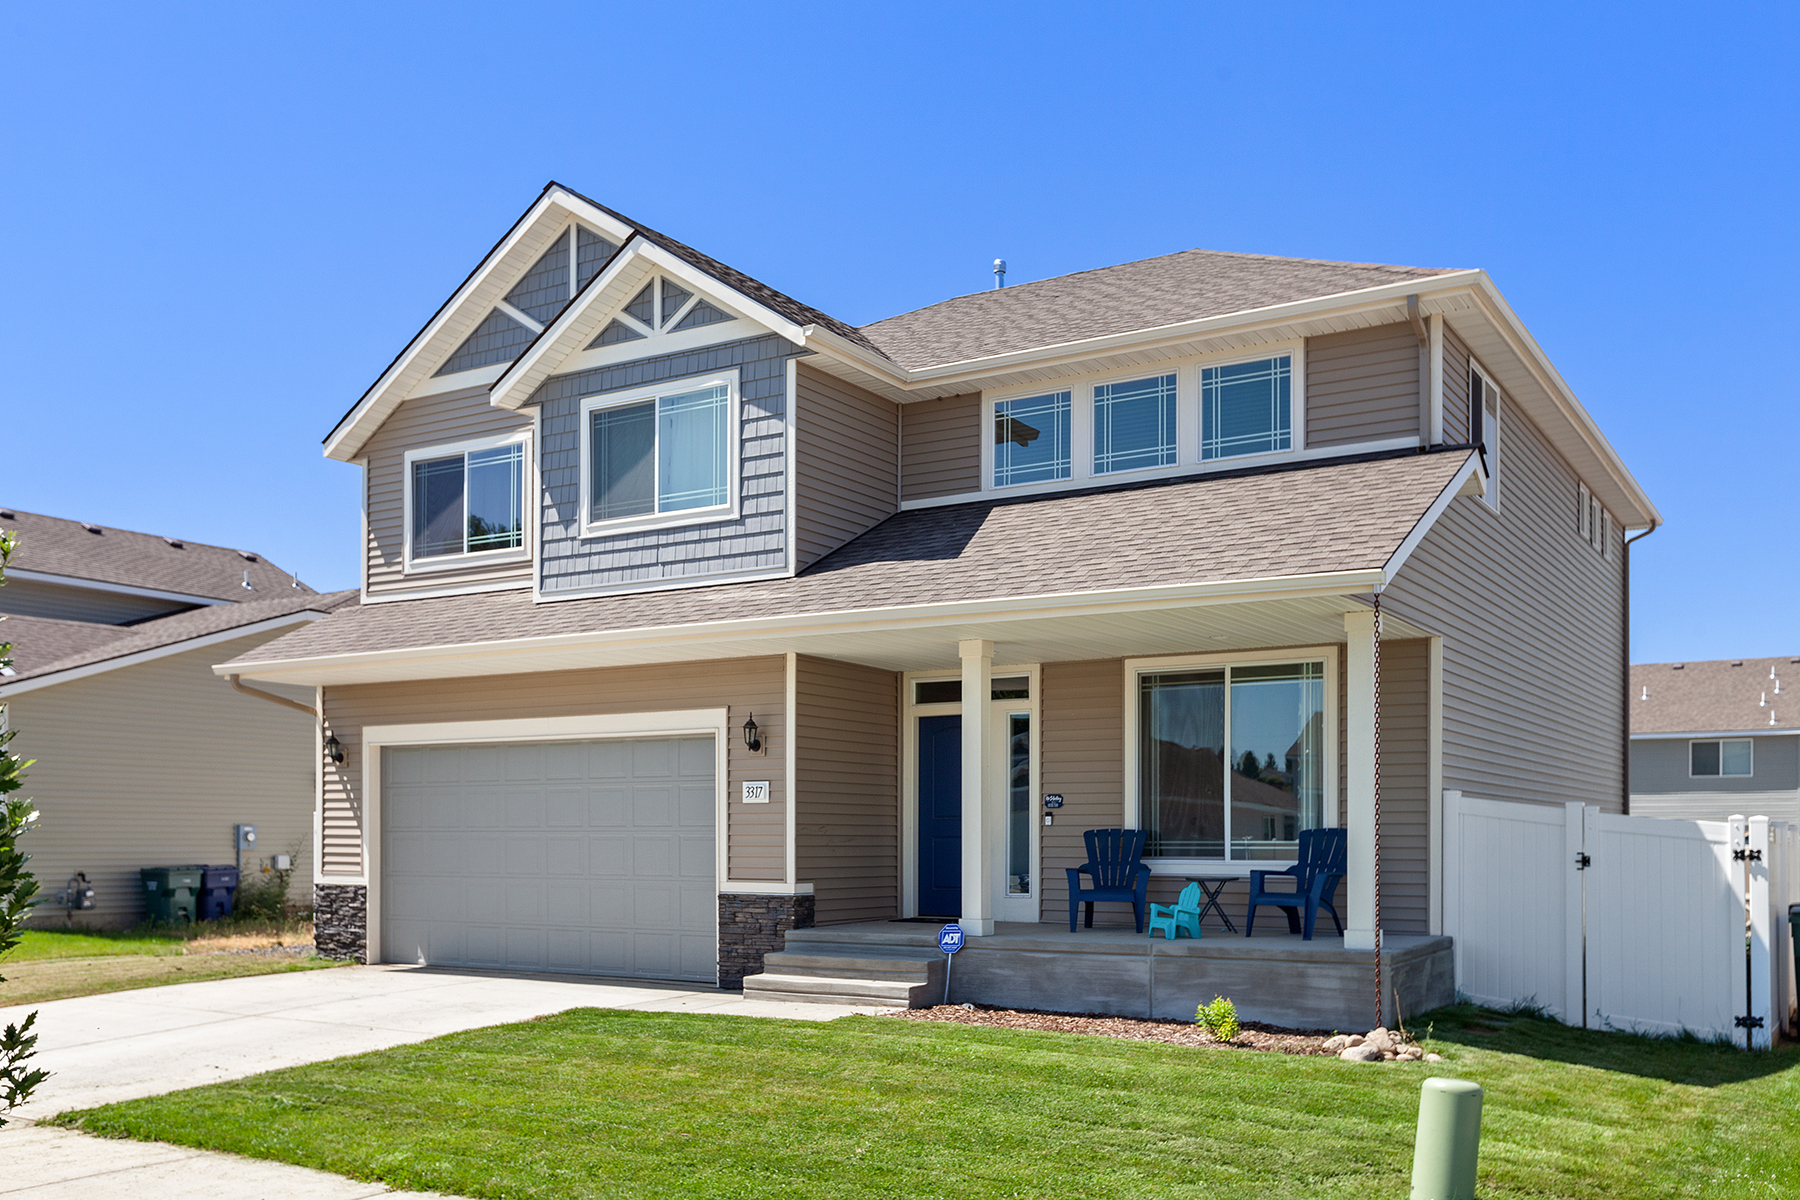 Single Family Homes for Active at Great Home in Whiskey Flats 3317 N Knob Creek Post Falls, Idaho 83854 United States